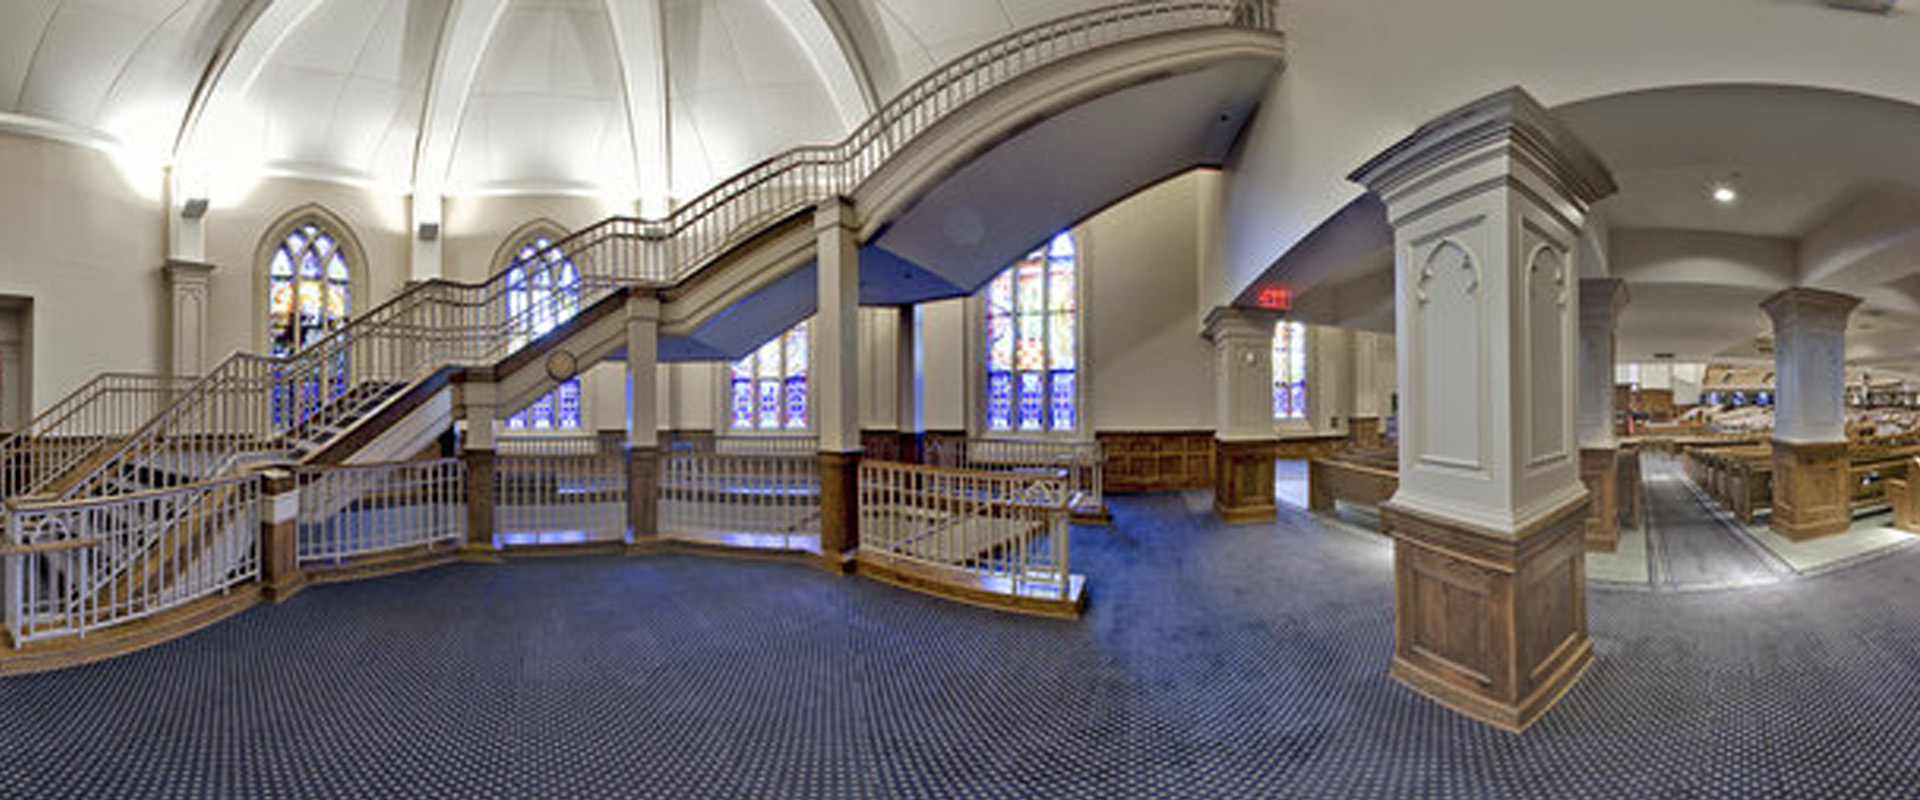 Church of the Apostles - Stairway